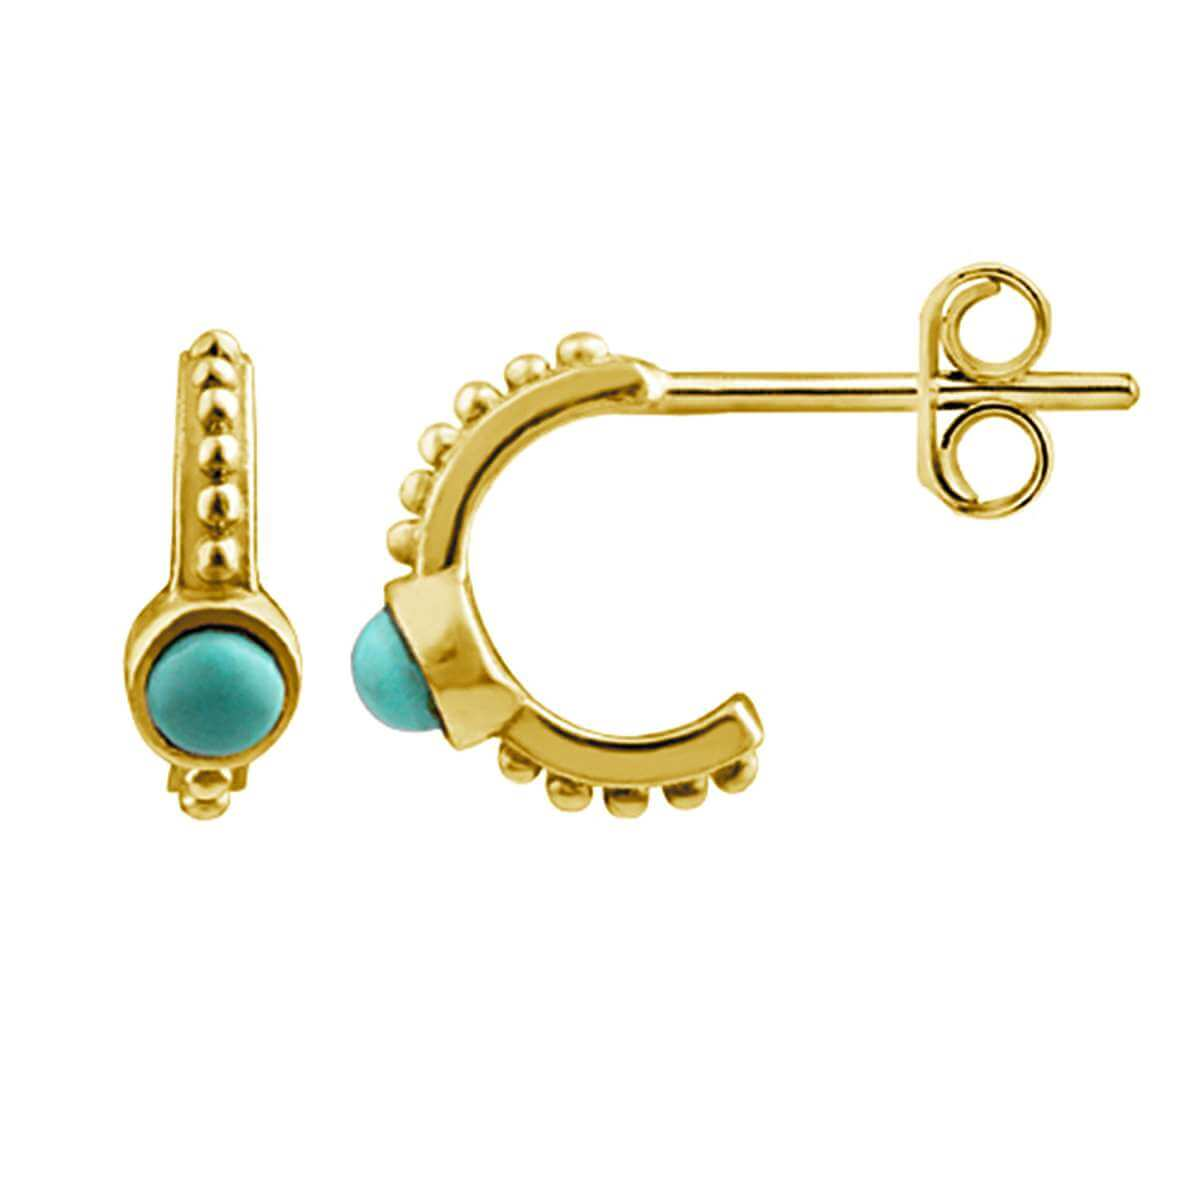 Gold Plated Sterling Silver Faux Turquoise Beaded Hoop Stud Earrings